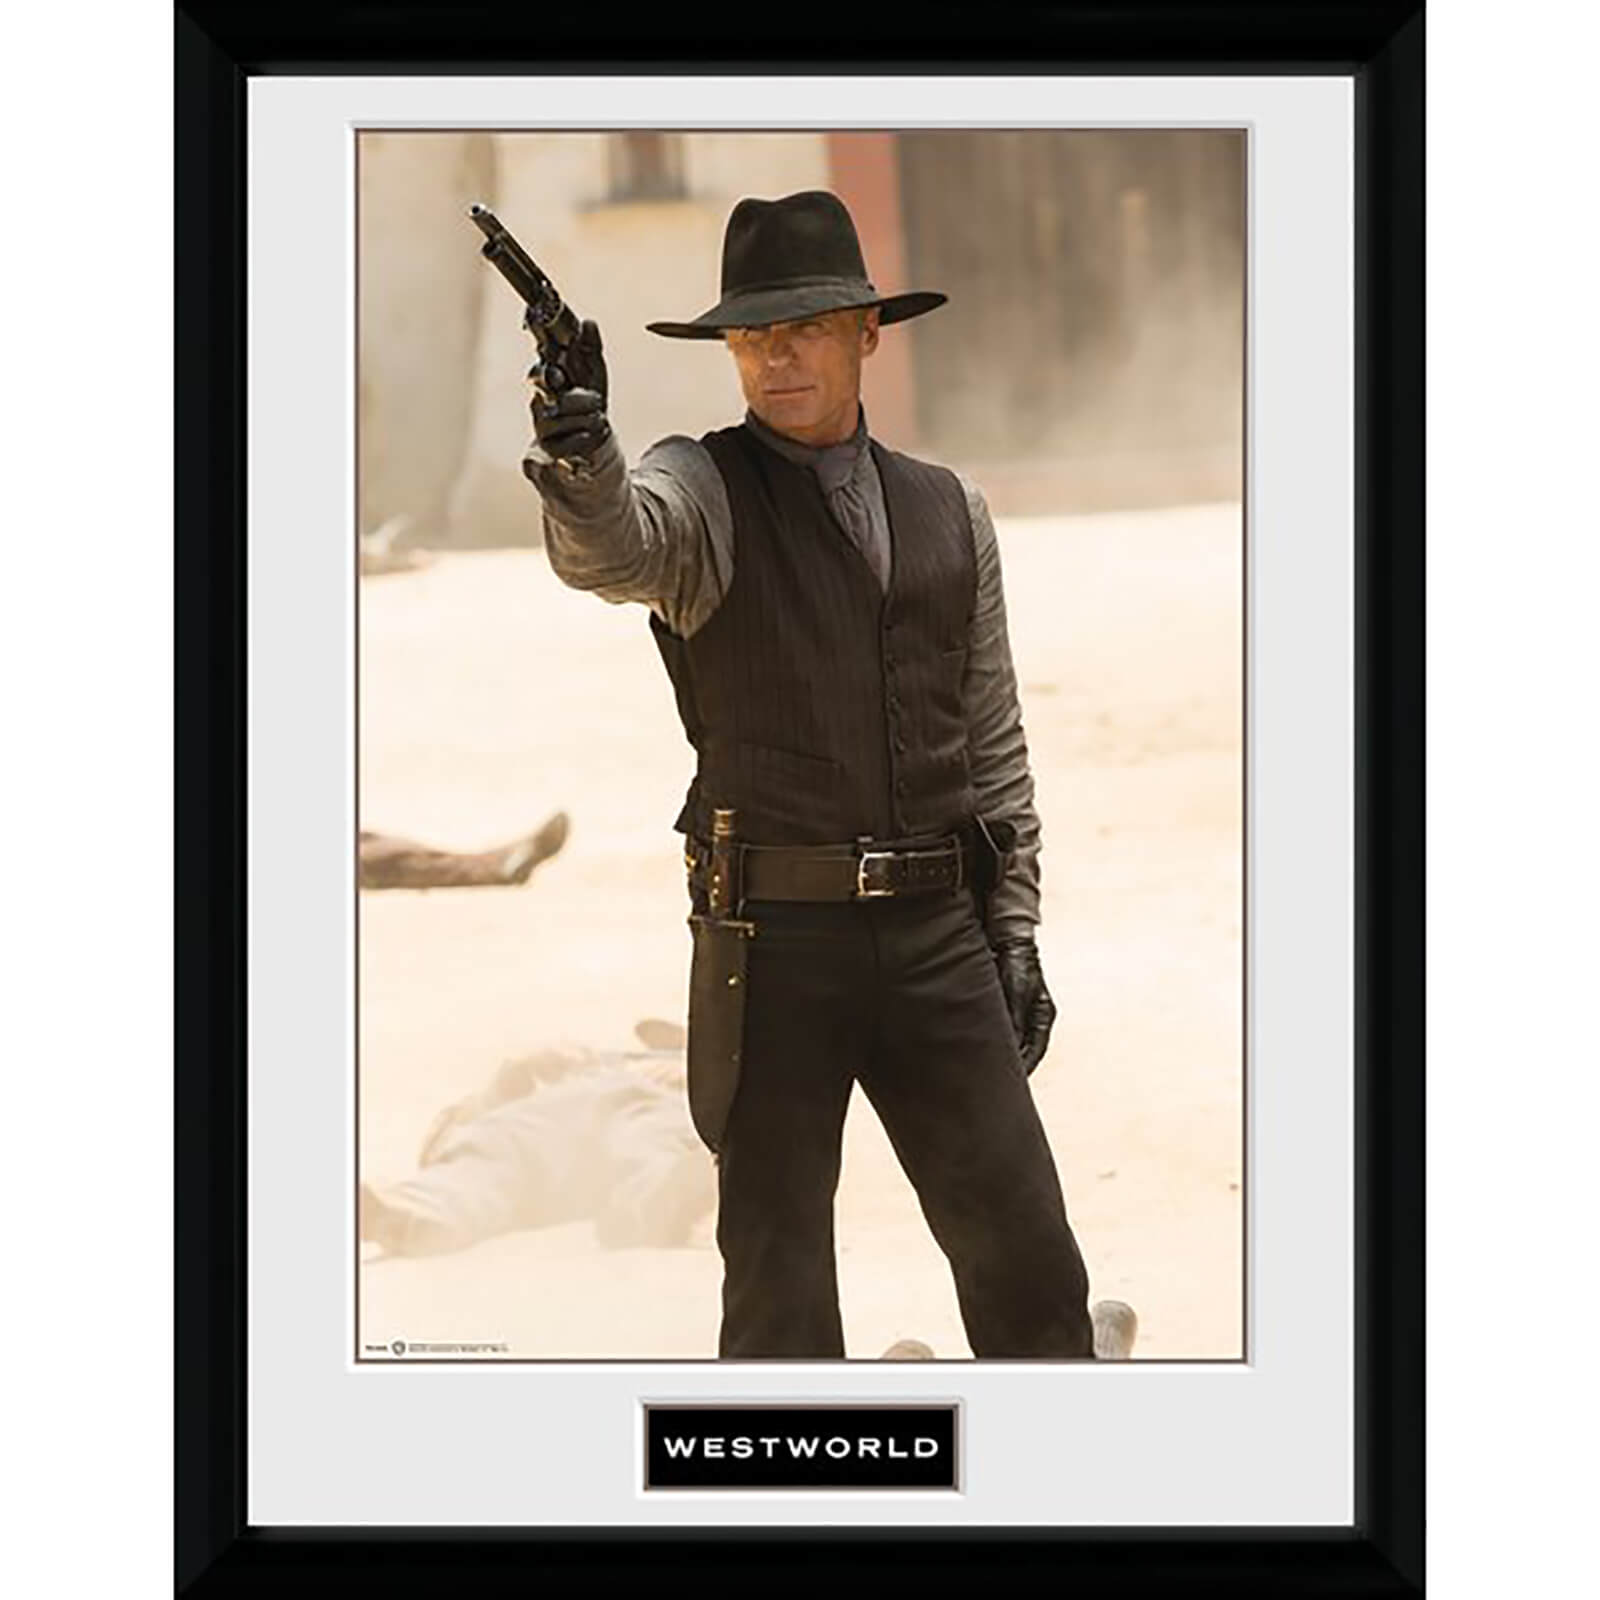 Westworld Man in Black Gun Framed Photograph 12 x 16 Inch